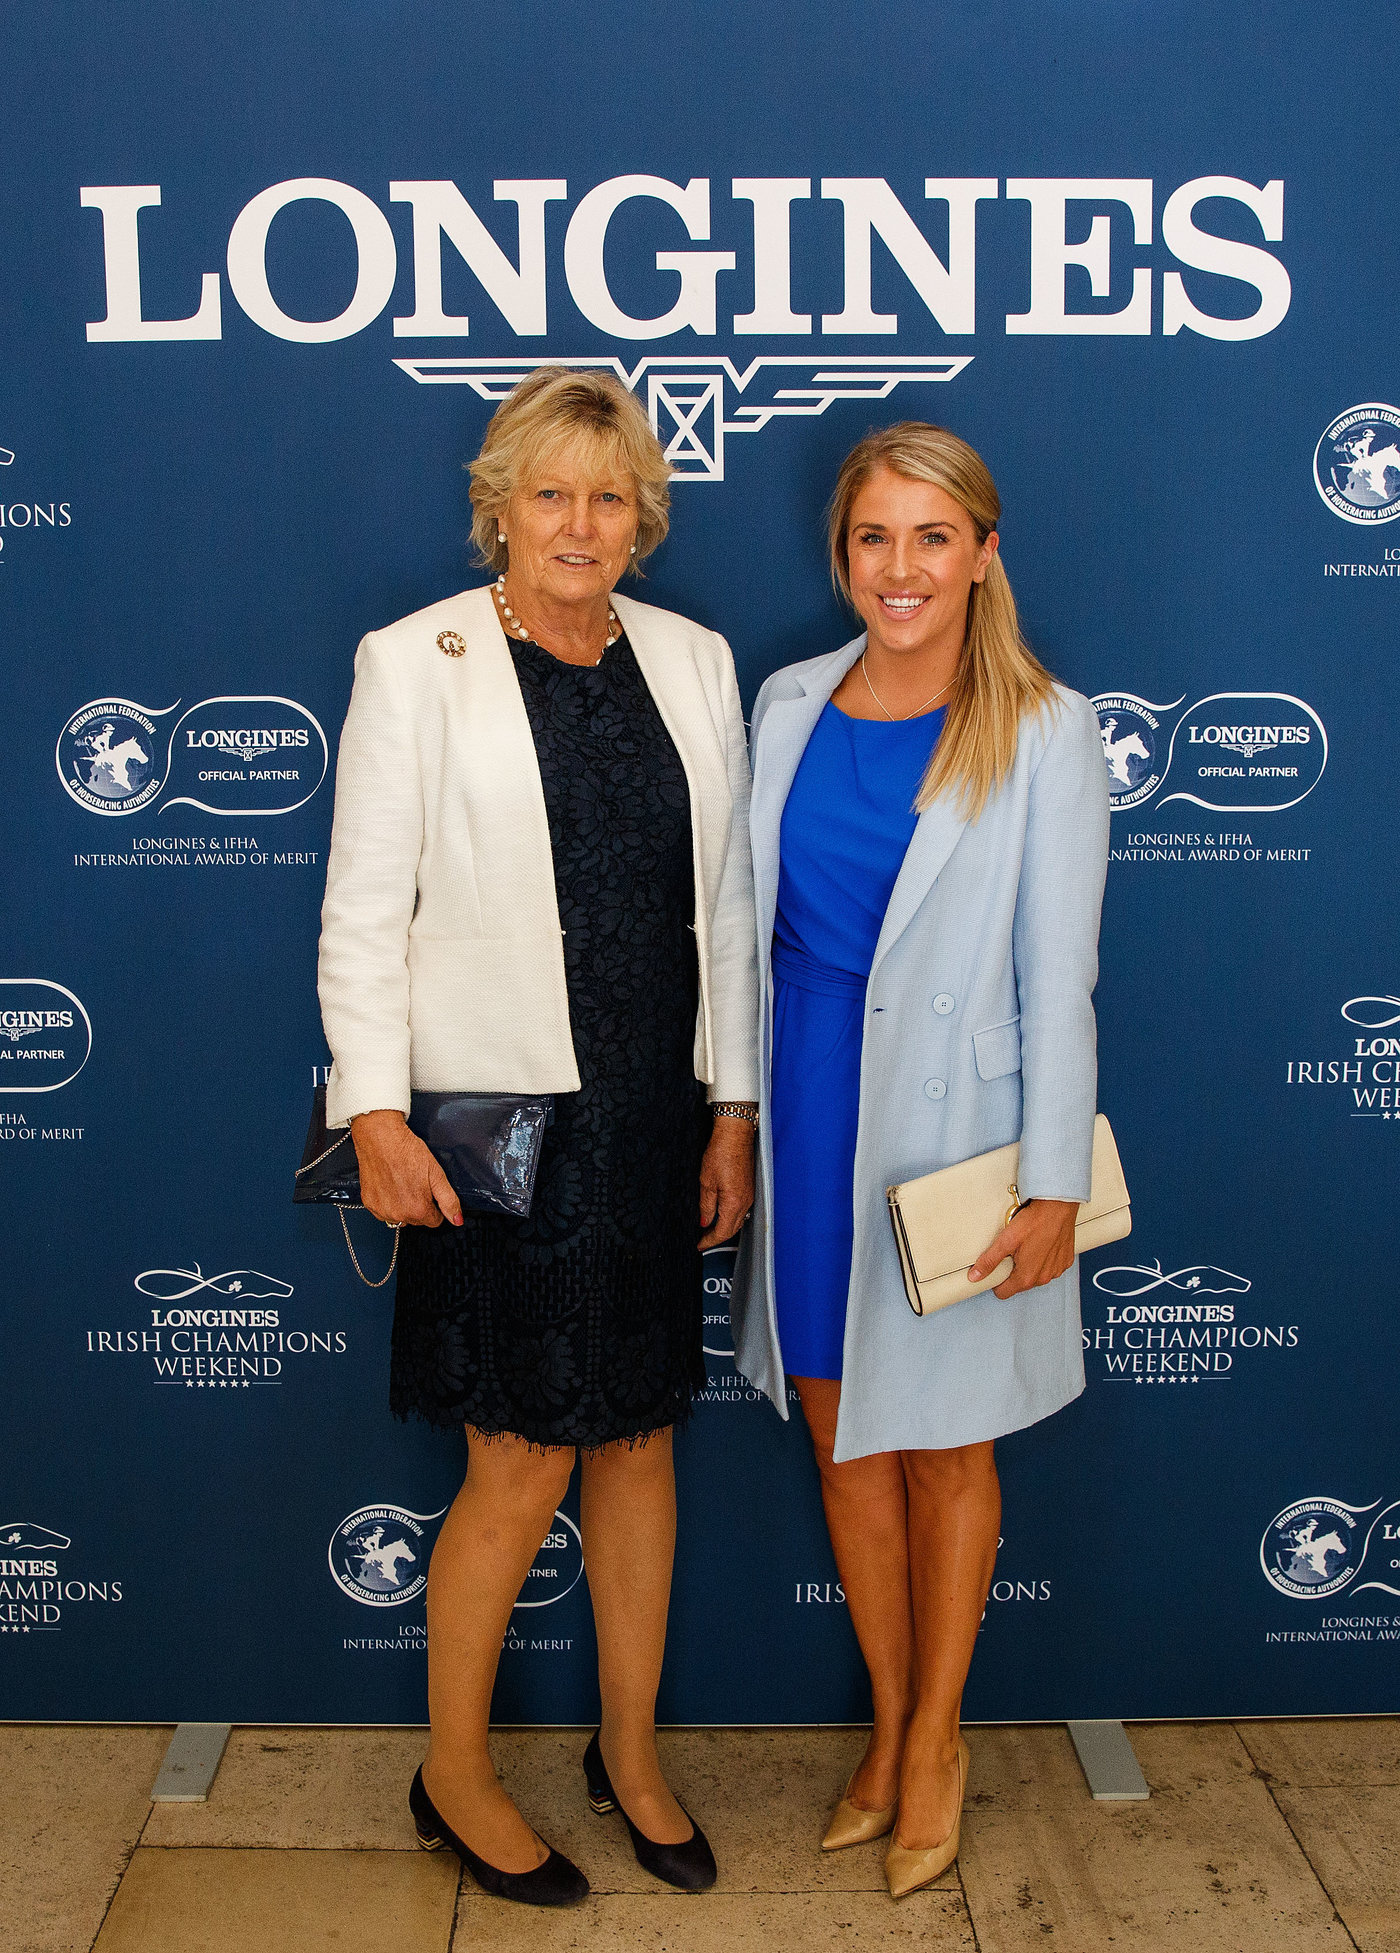 Longines Flat Racing Event: Magnier Family, O'Brien Receive  2018 Longines and IFHA International Award of Merit 9